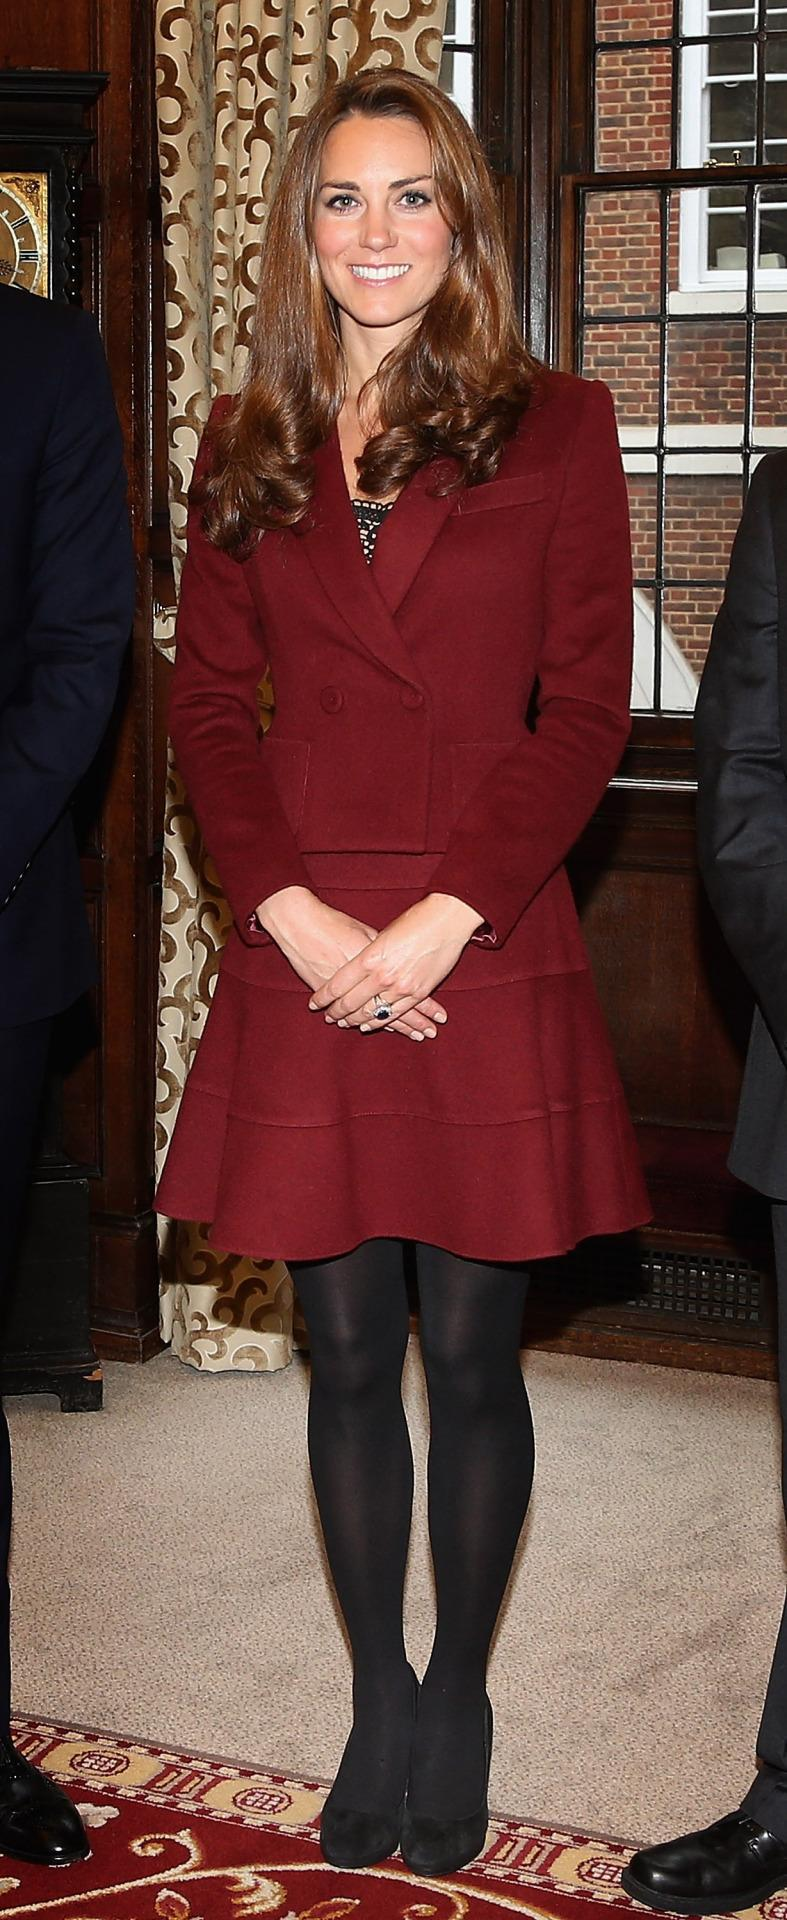 <p>The Duchess met law students in London in a burgundy jacket and skirt by Paule Ka. On her feet, she chose suede Episode heels. </p><p><i>[Photo: PA]</i></p>